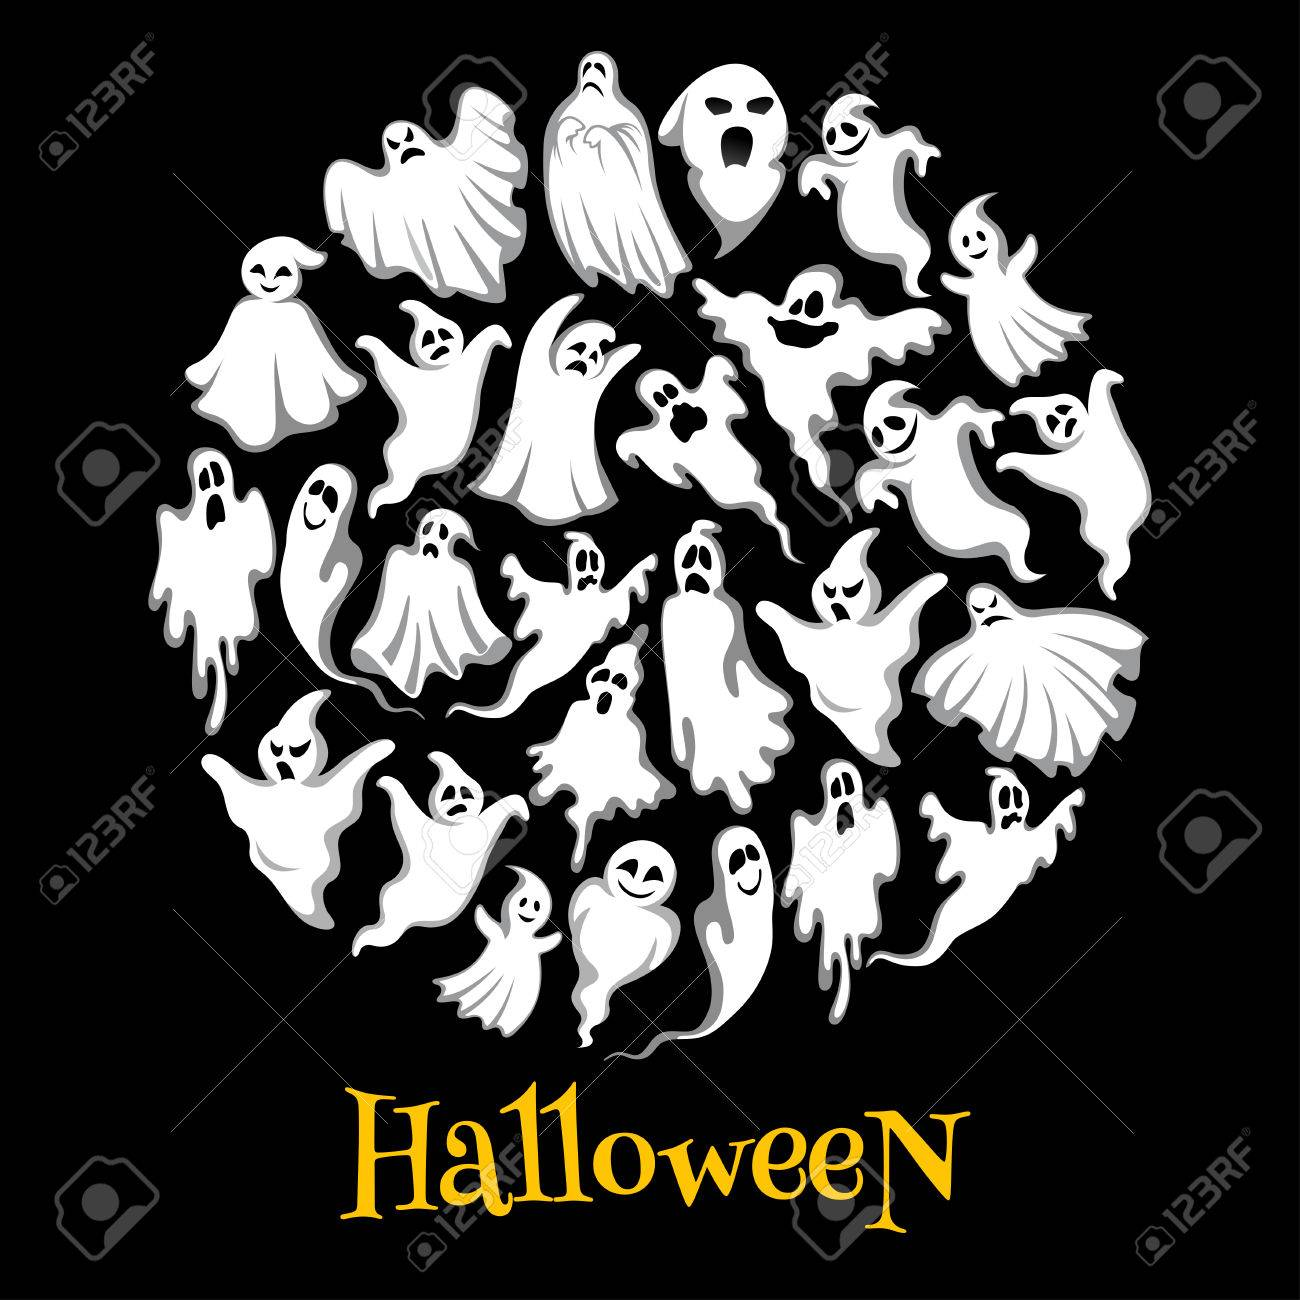 Halloween Ghost Or Holiday Spirit Round Poster. Scary Ghost, Spooky Night  Monster, Funny